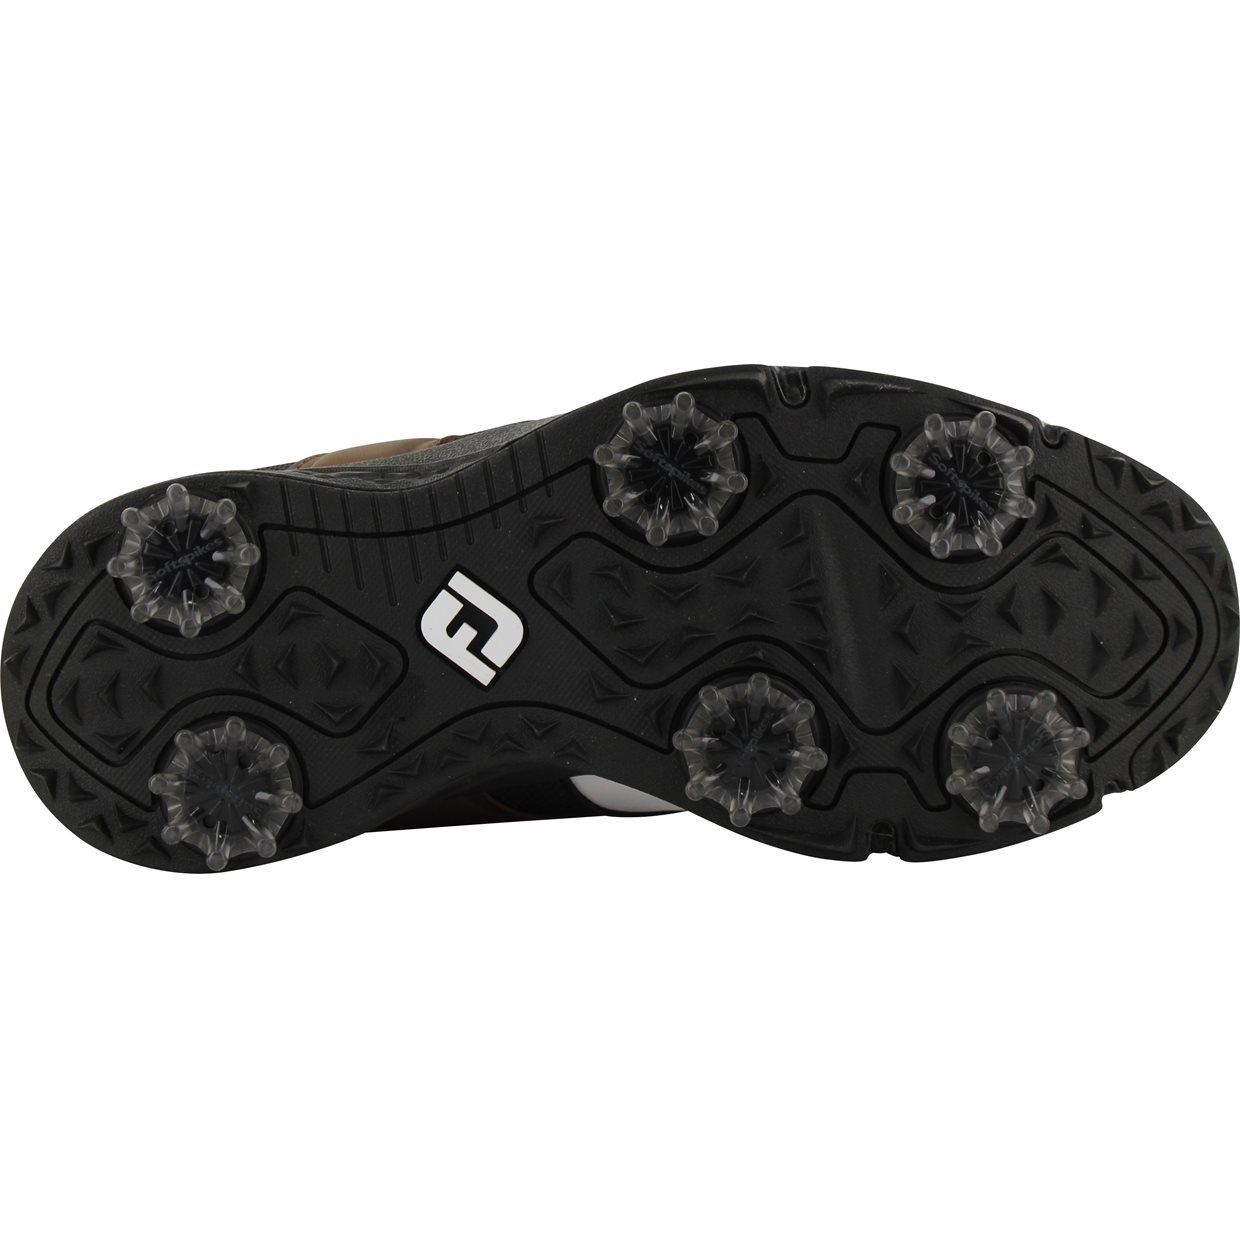 Junior Golf Shoes Clearance